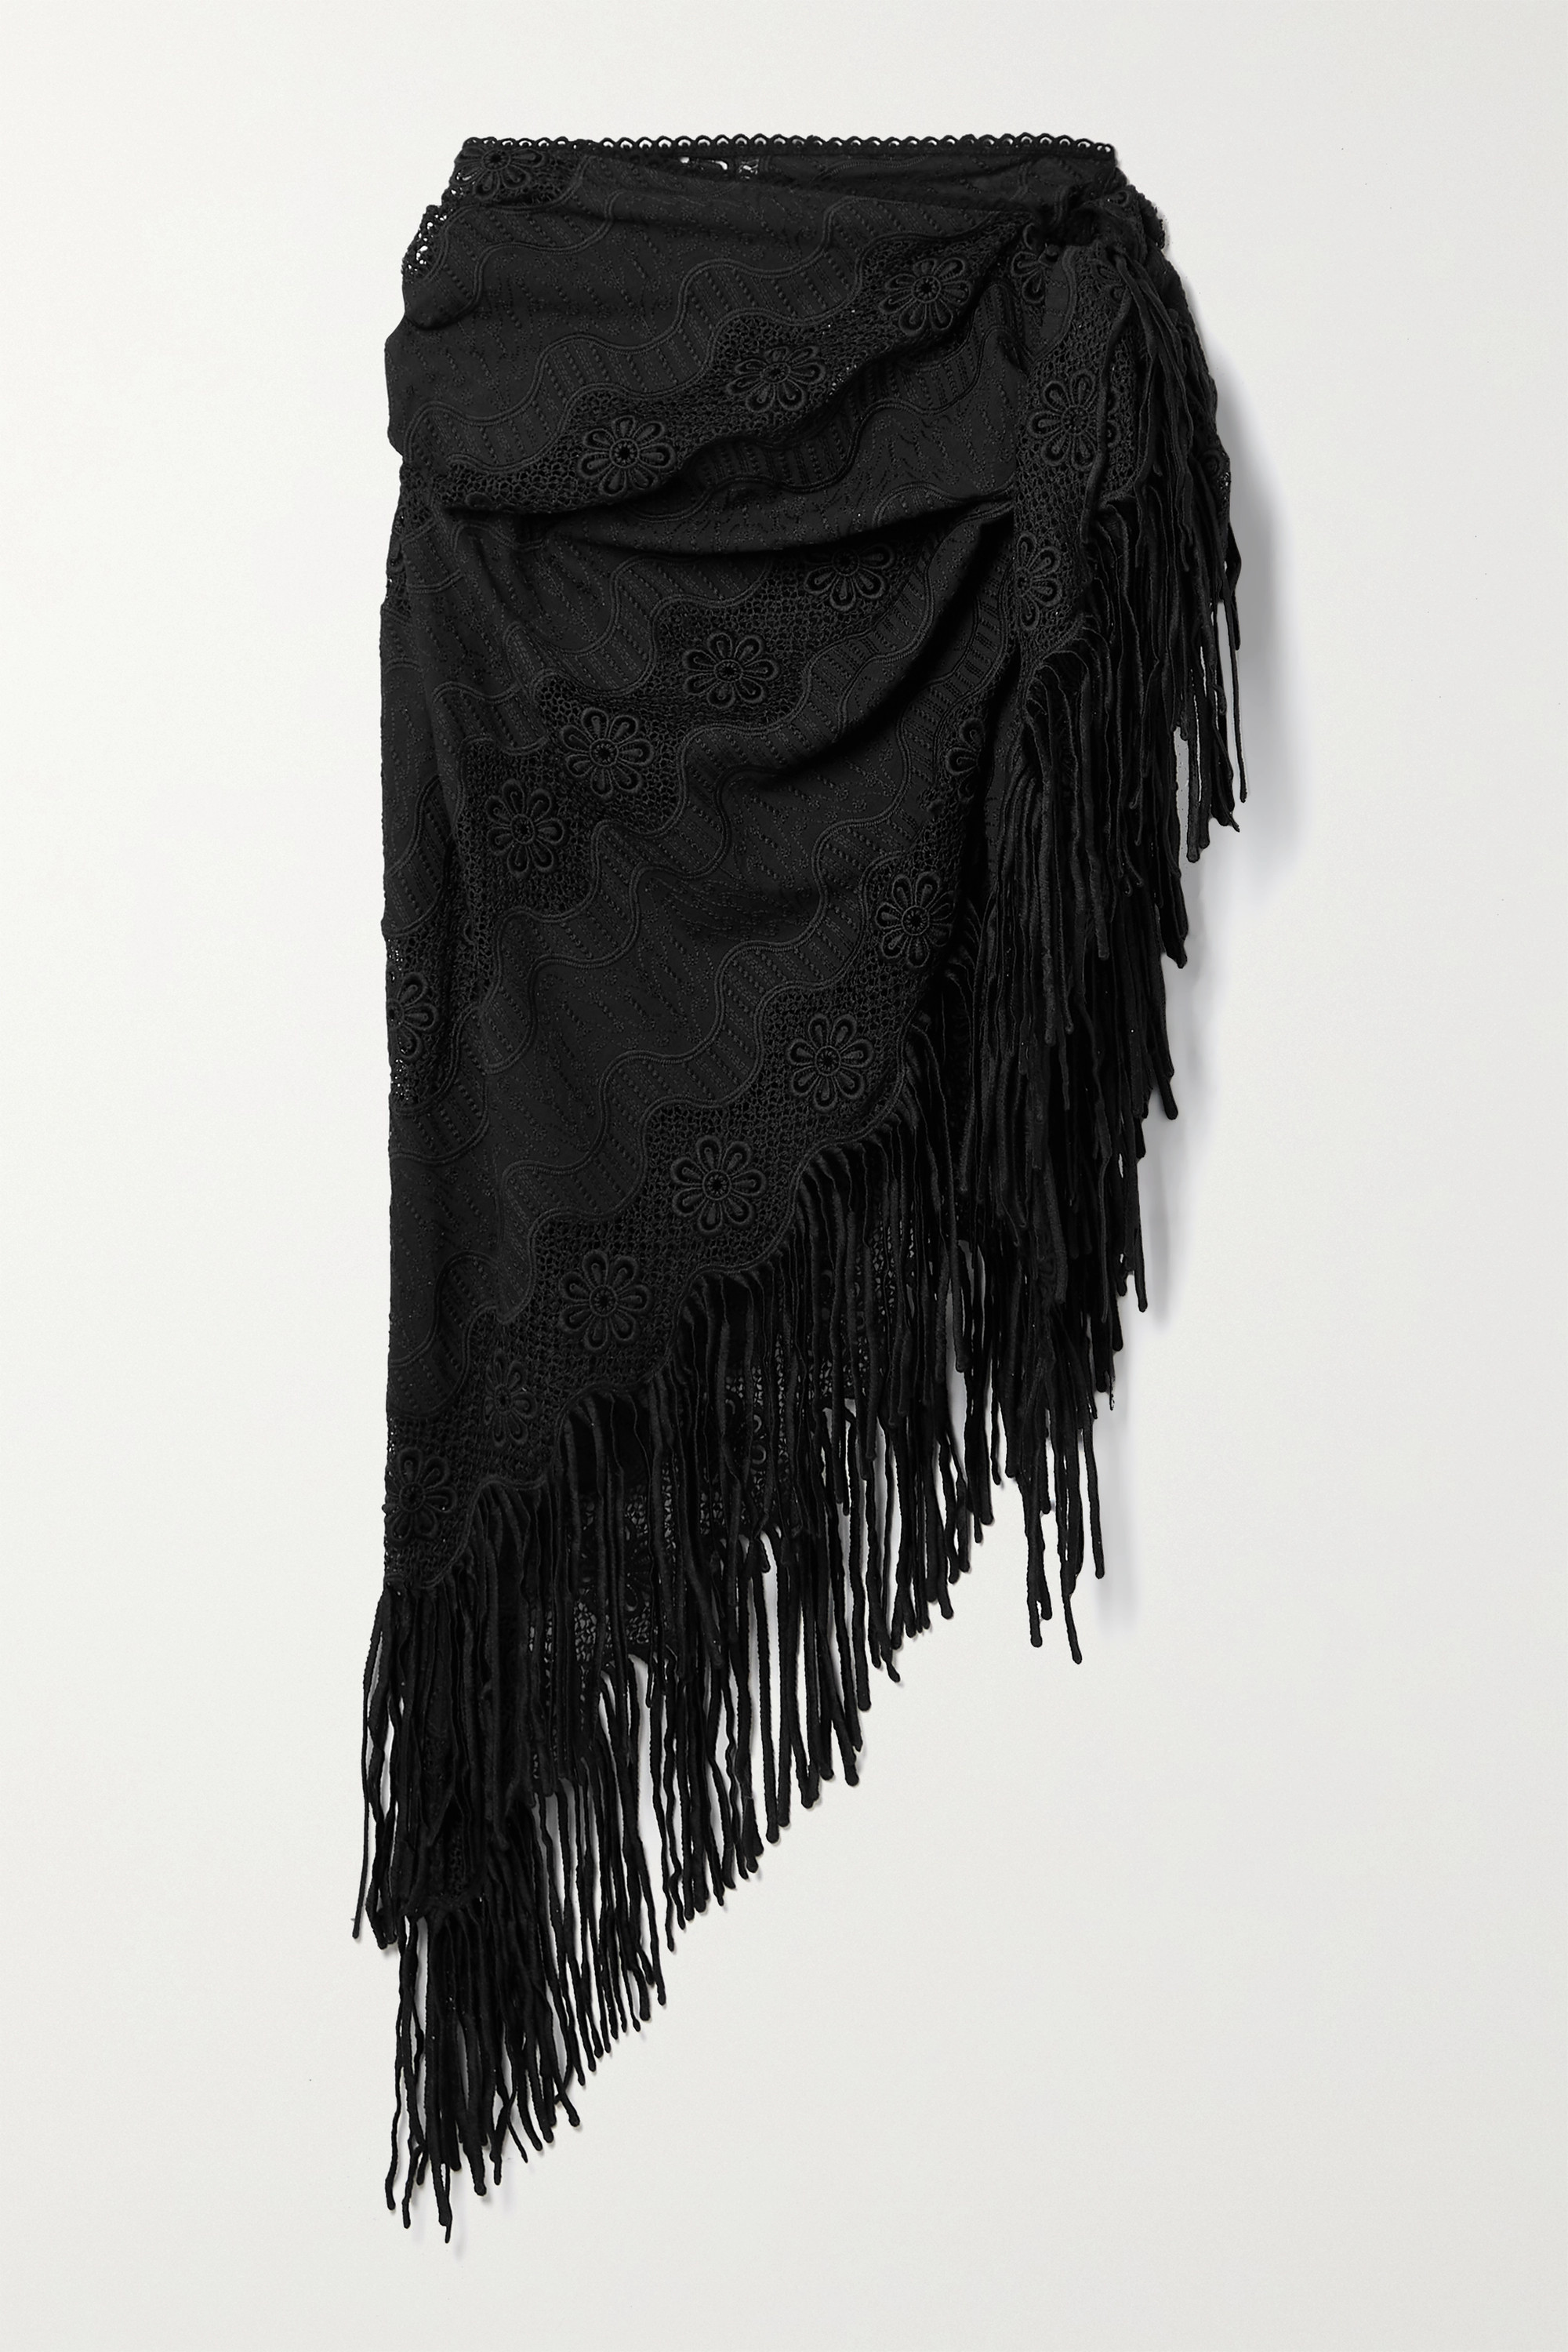 Miguelina Julia Fringed Crochet-trimmed Embroidered Cotton-blend Pareo In Black